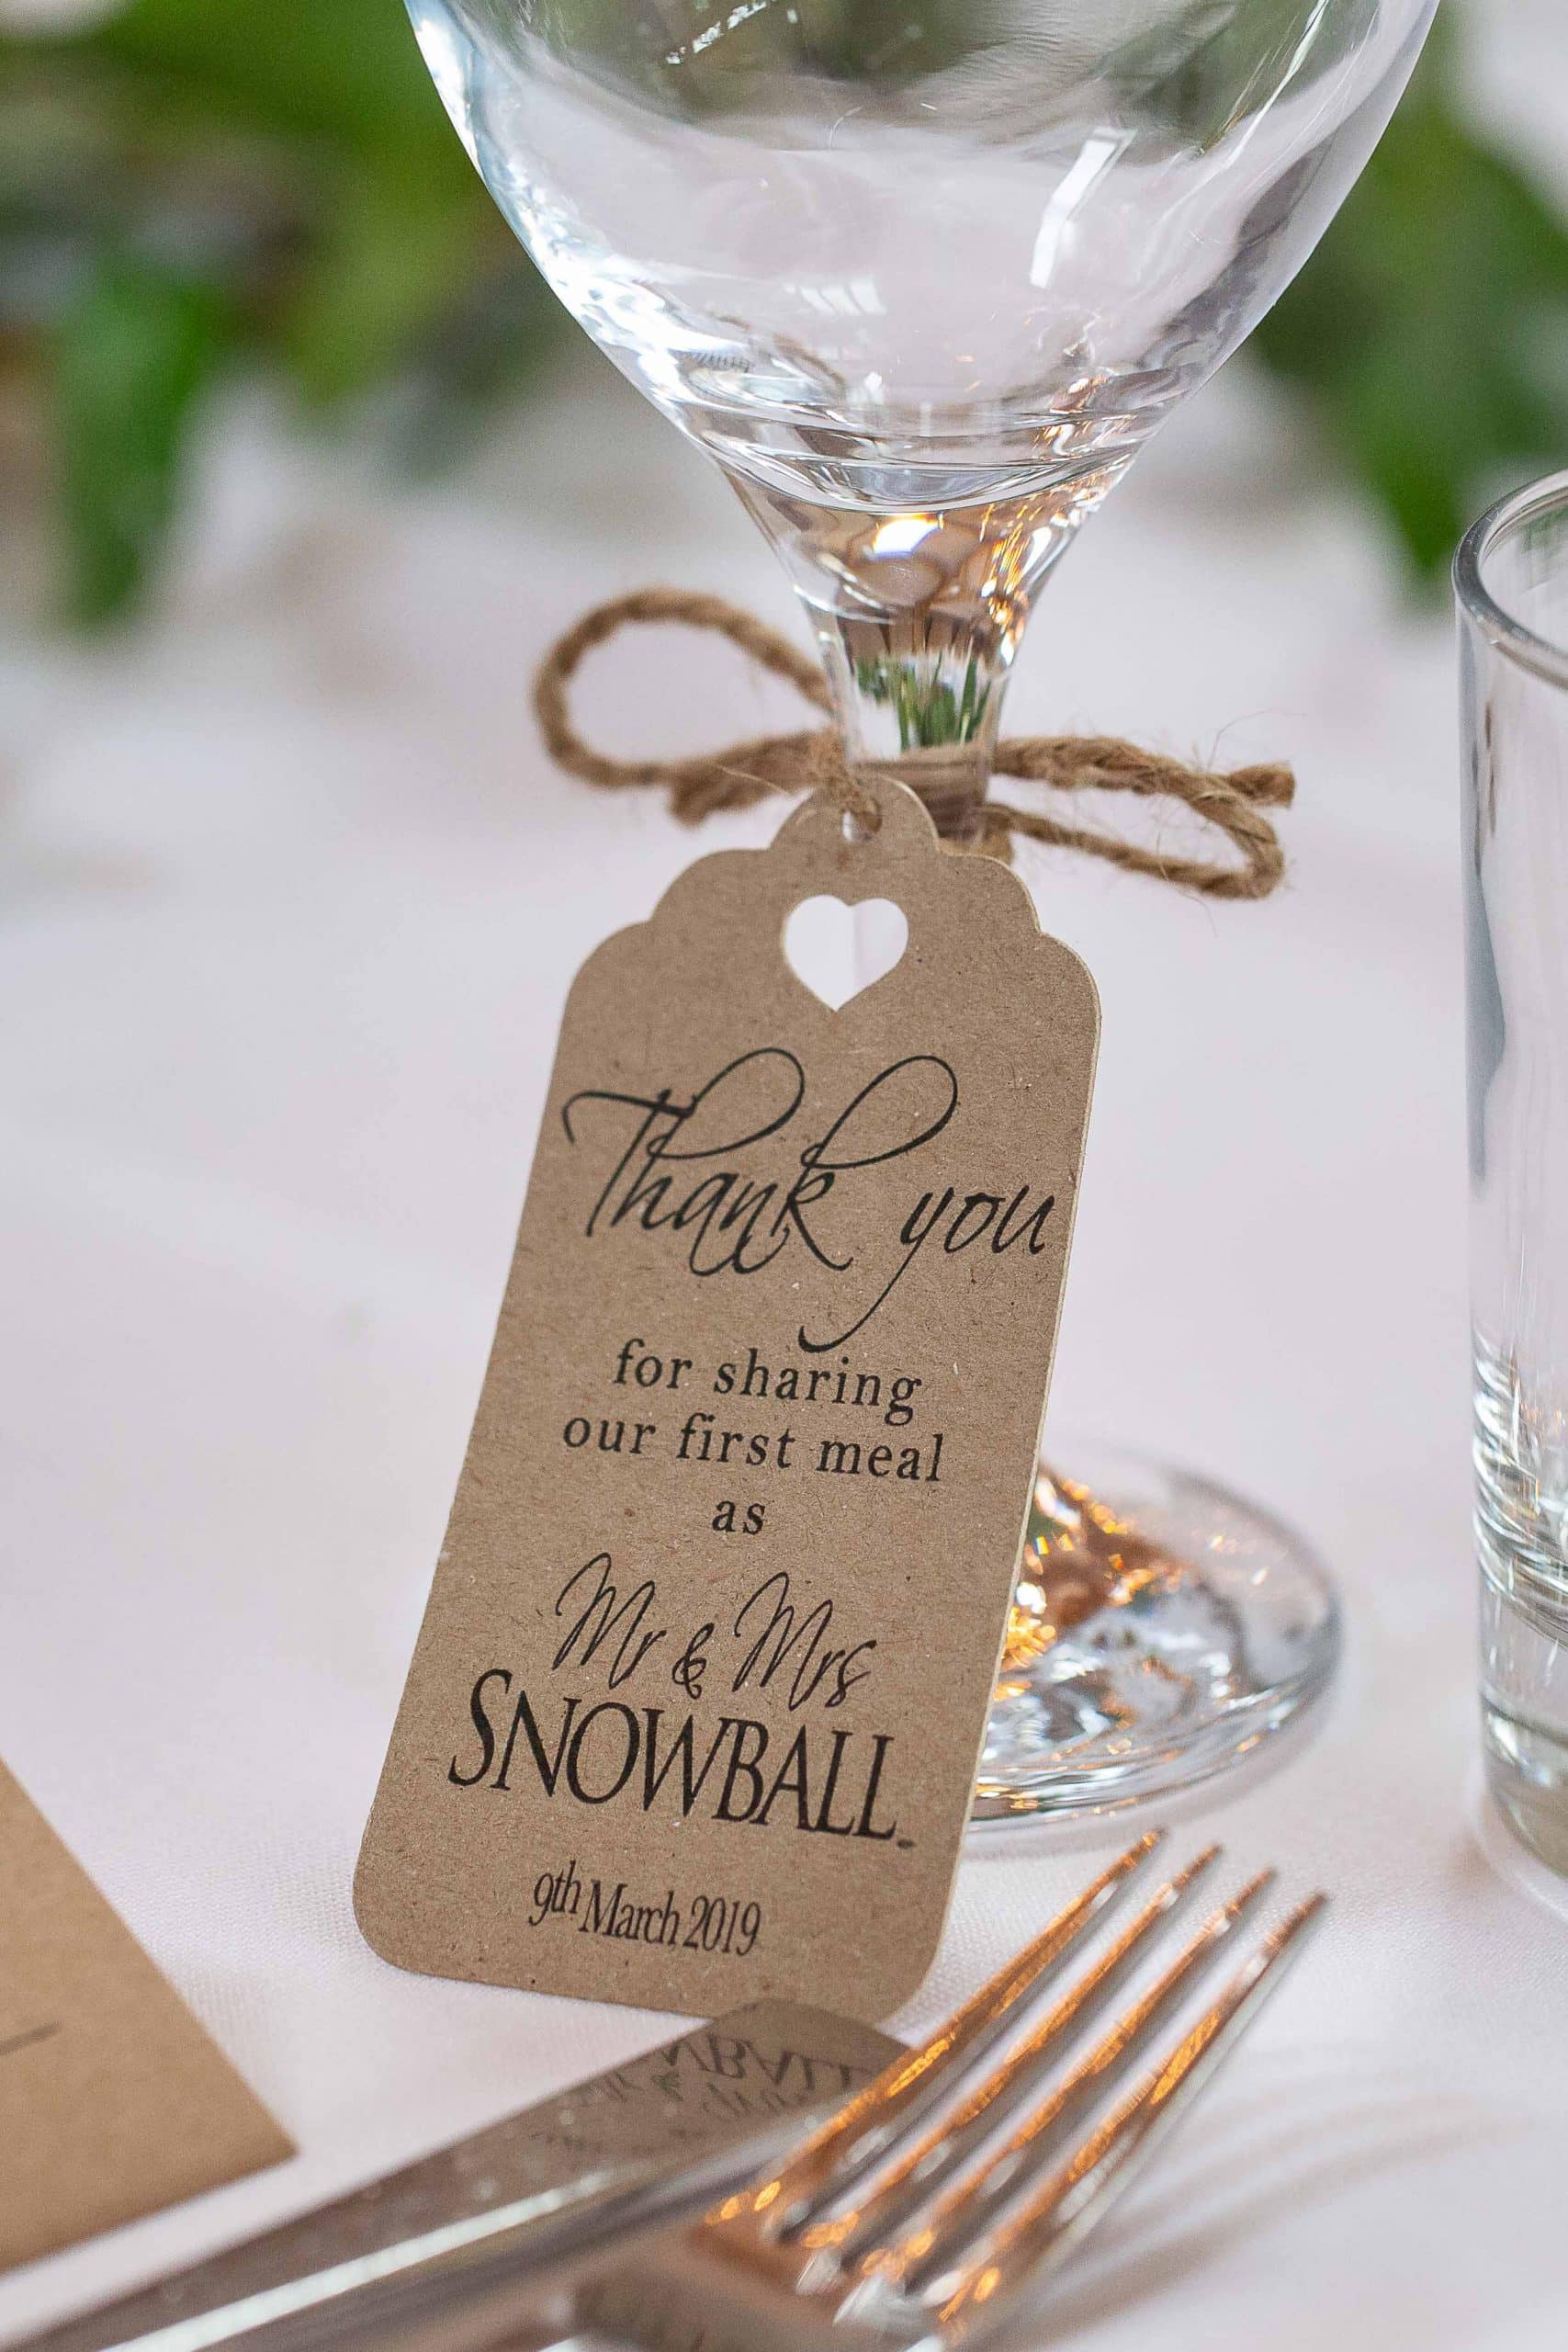 Wedding favours at Doxford Barns